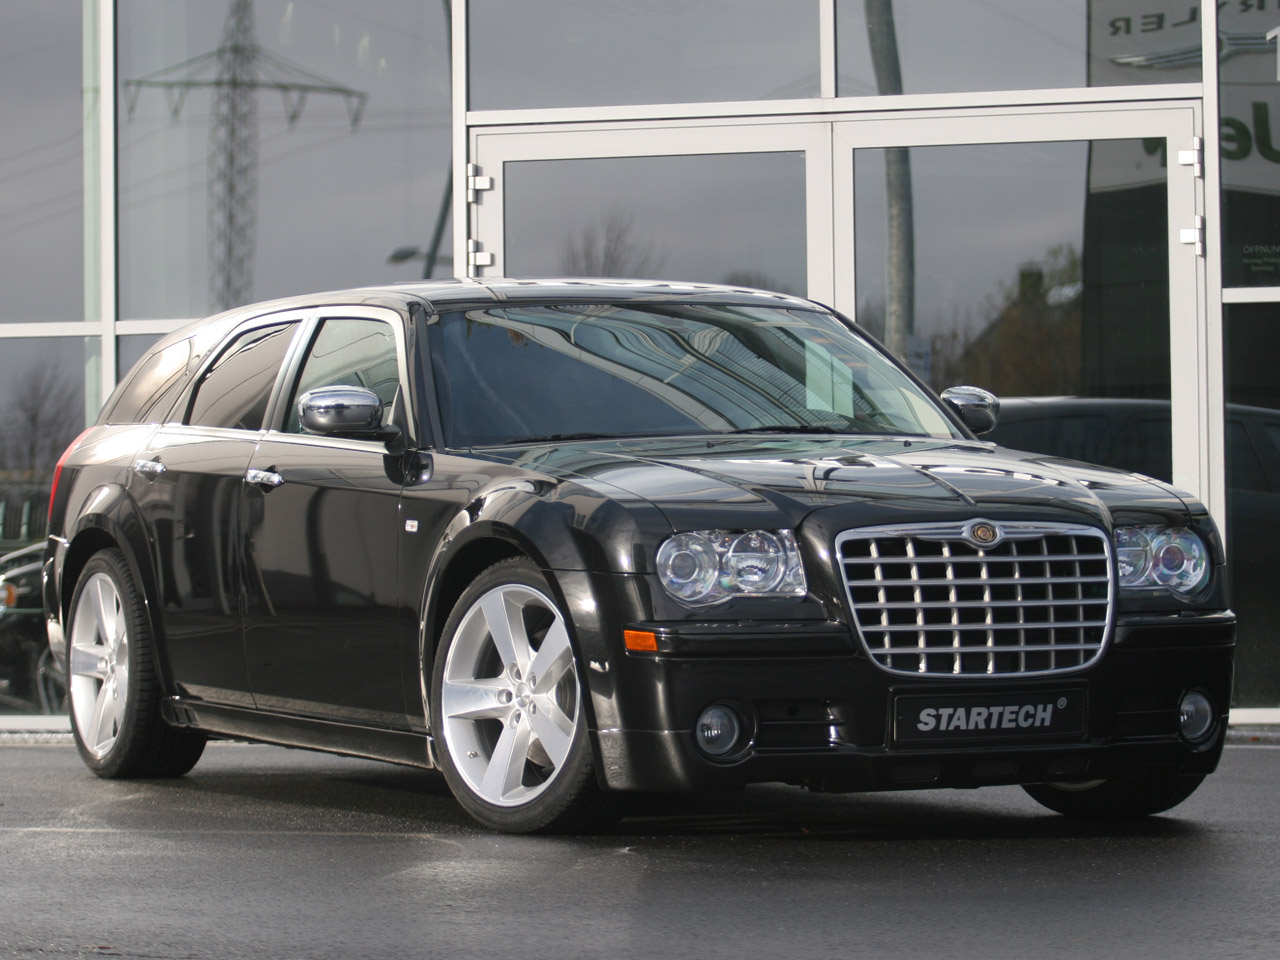 Chrysler 300C - 1280 x 960, 01 из 19